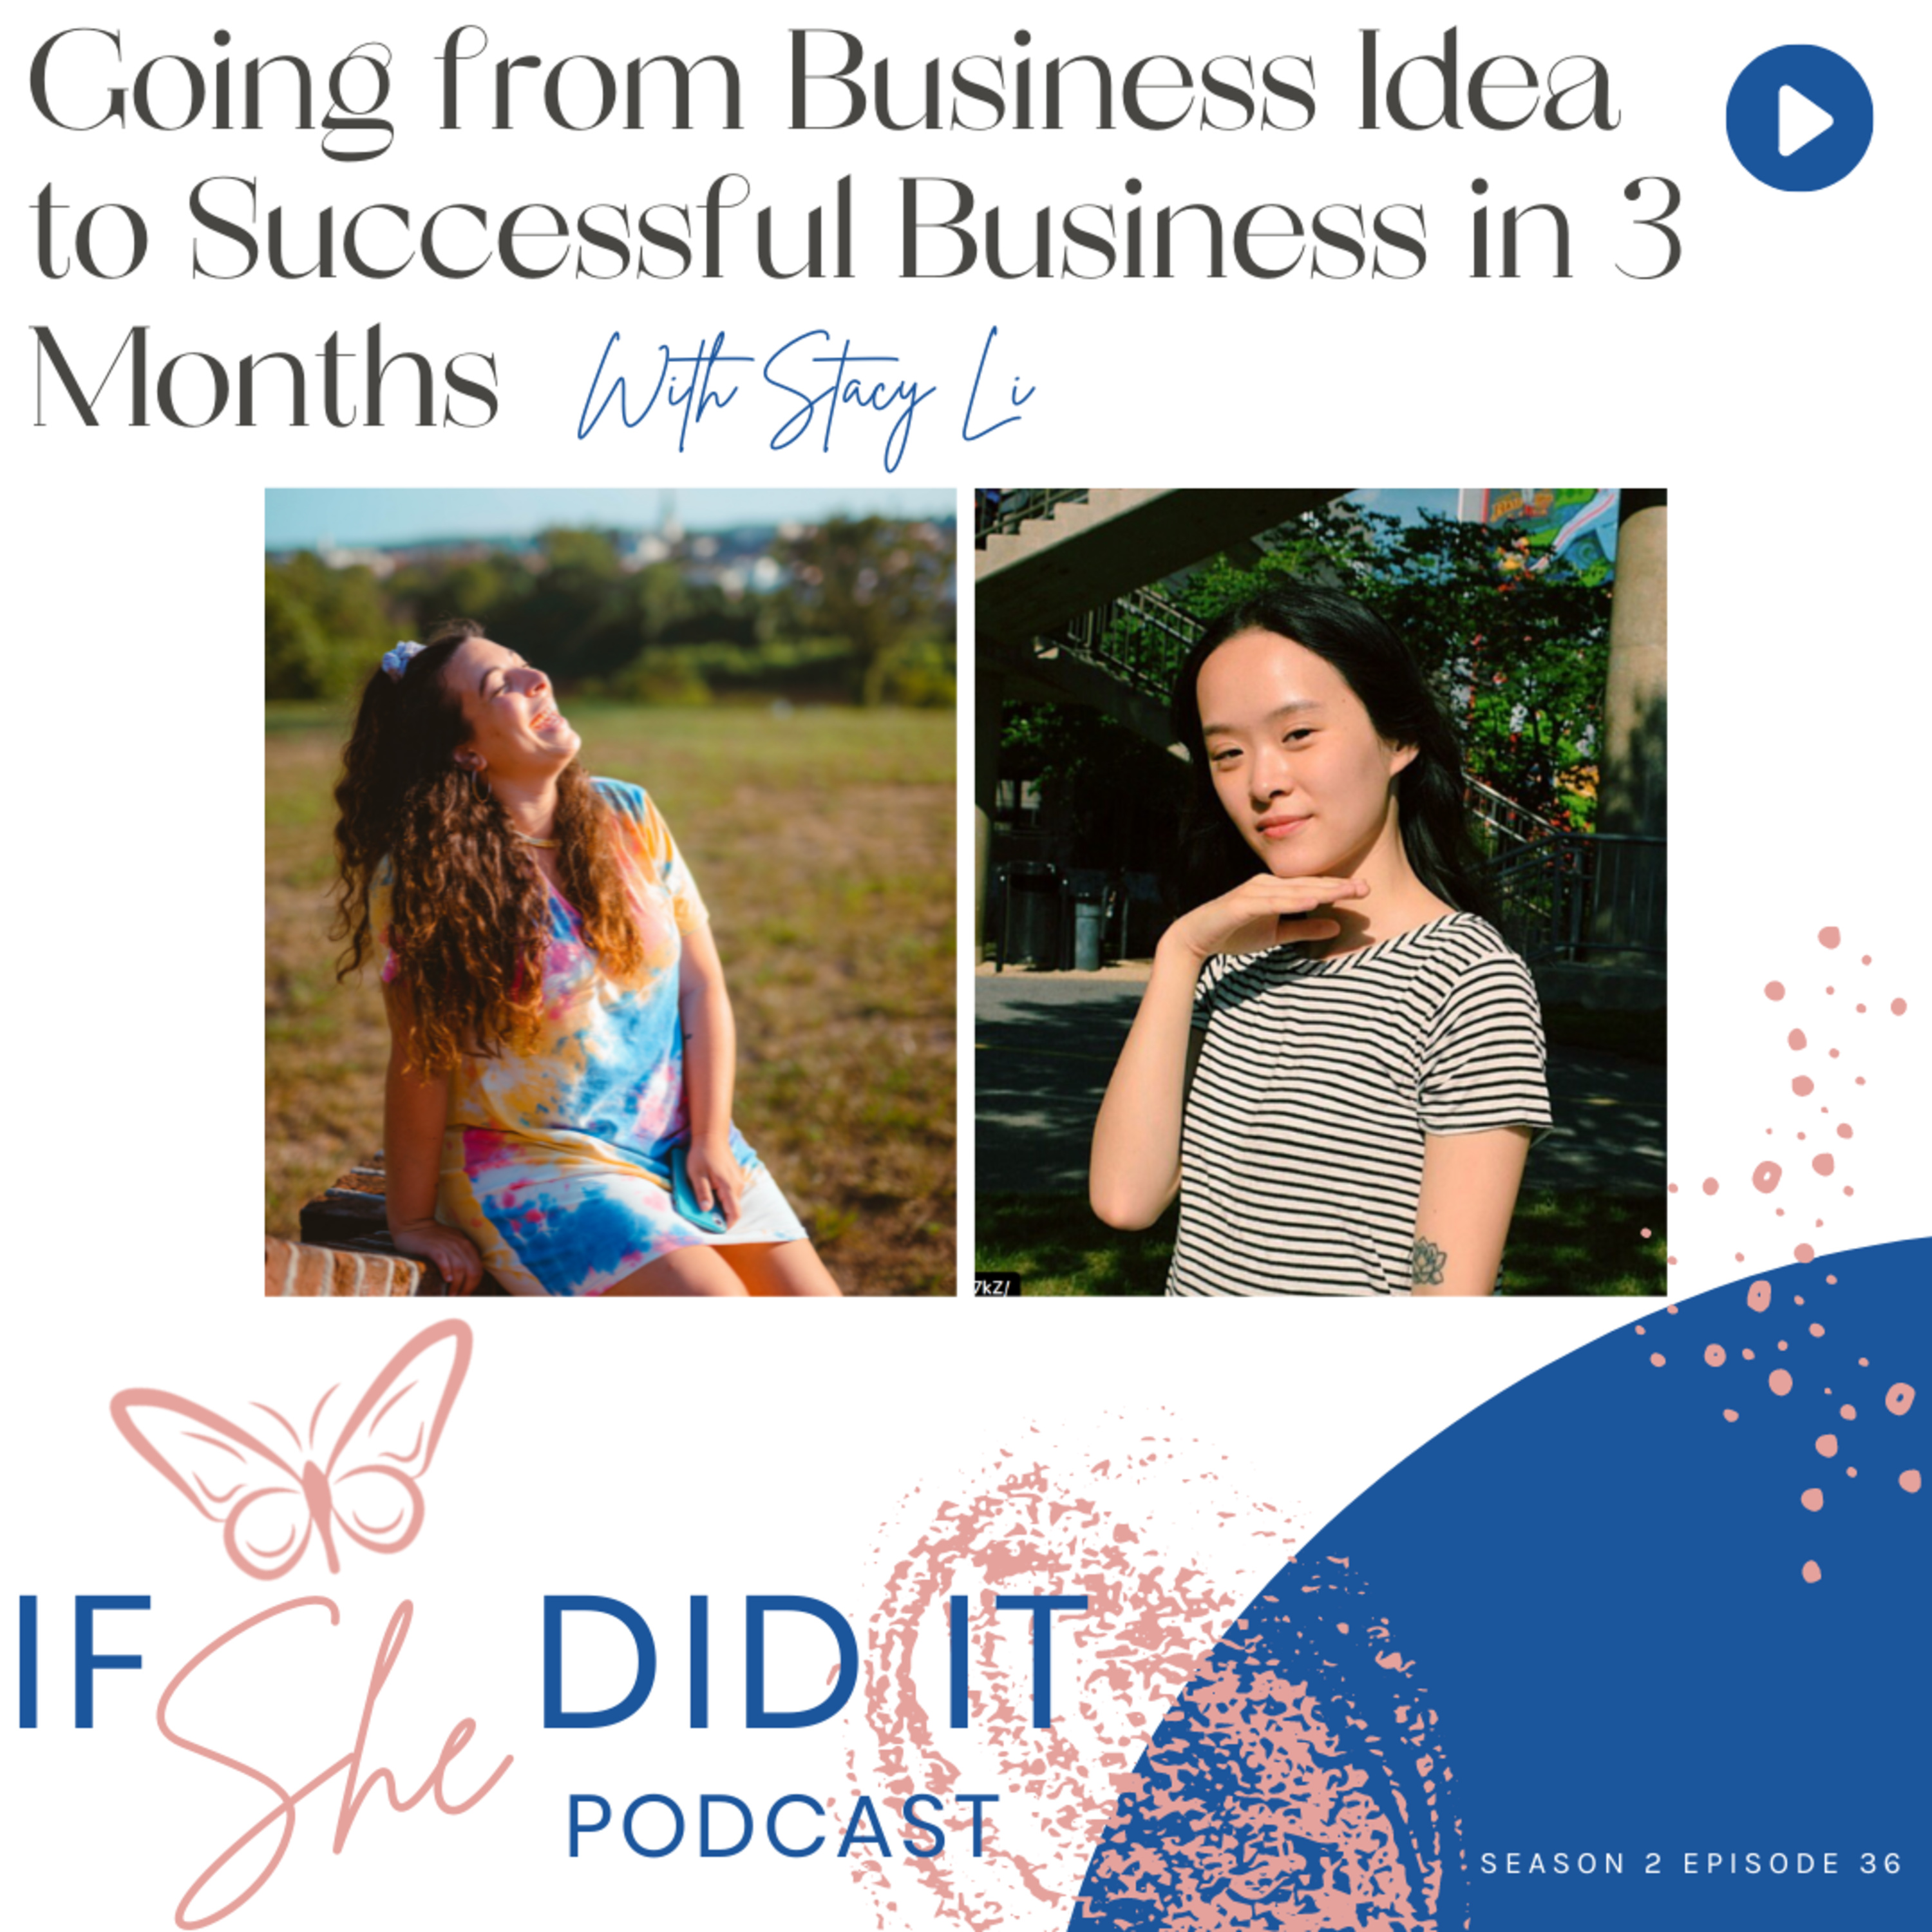 Going from Business Idea to Successful Business in 3 Months